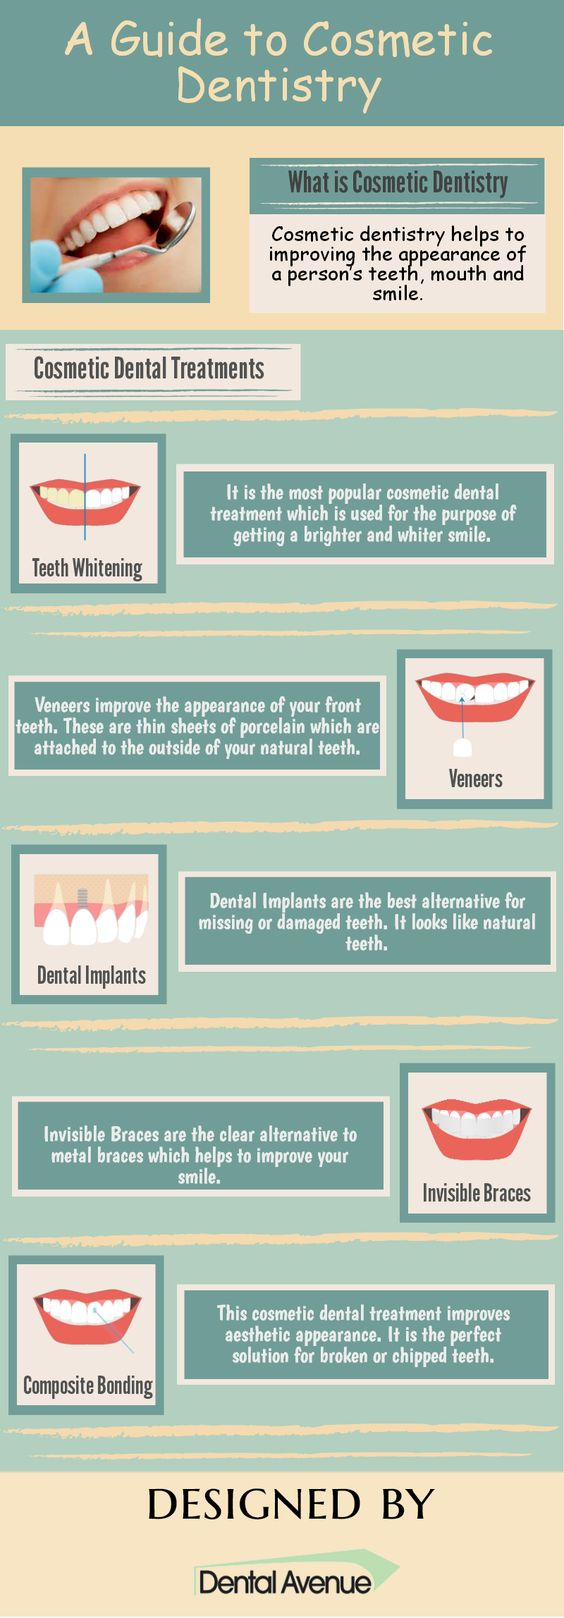 Guide to Cosmetic Dentistry